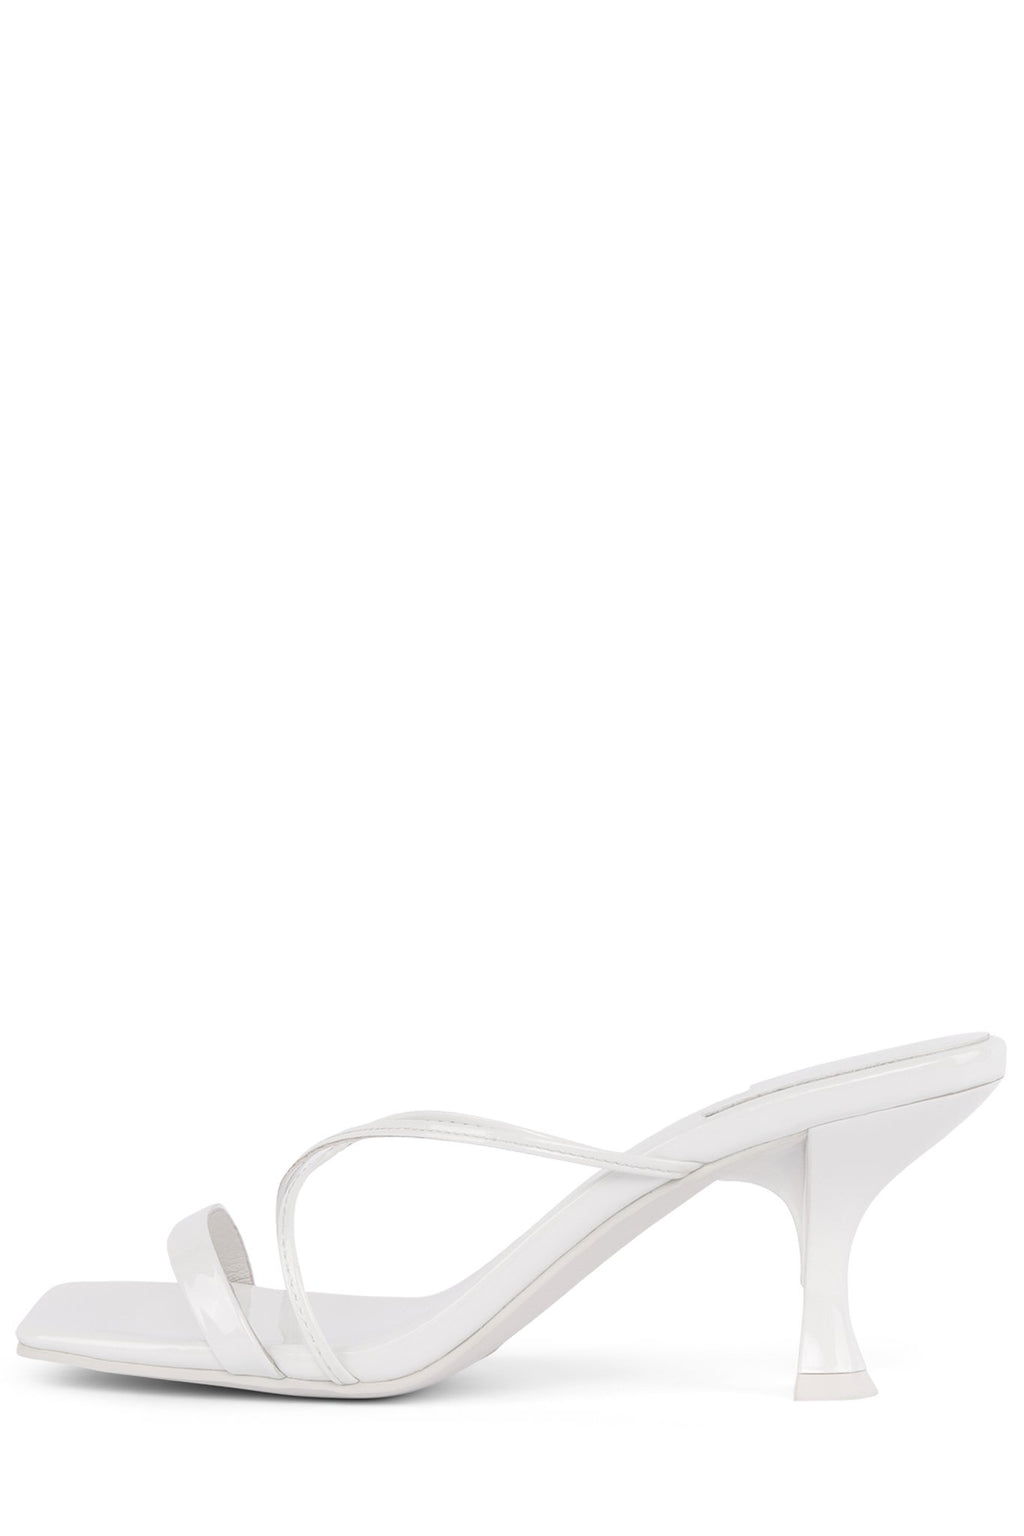 MURAL-2 Heeled Sandal YYH White Patent 6